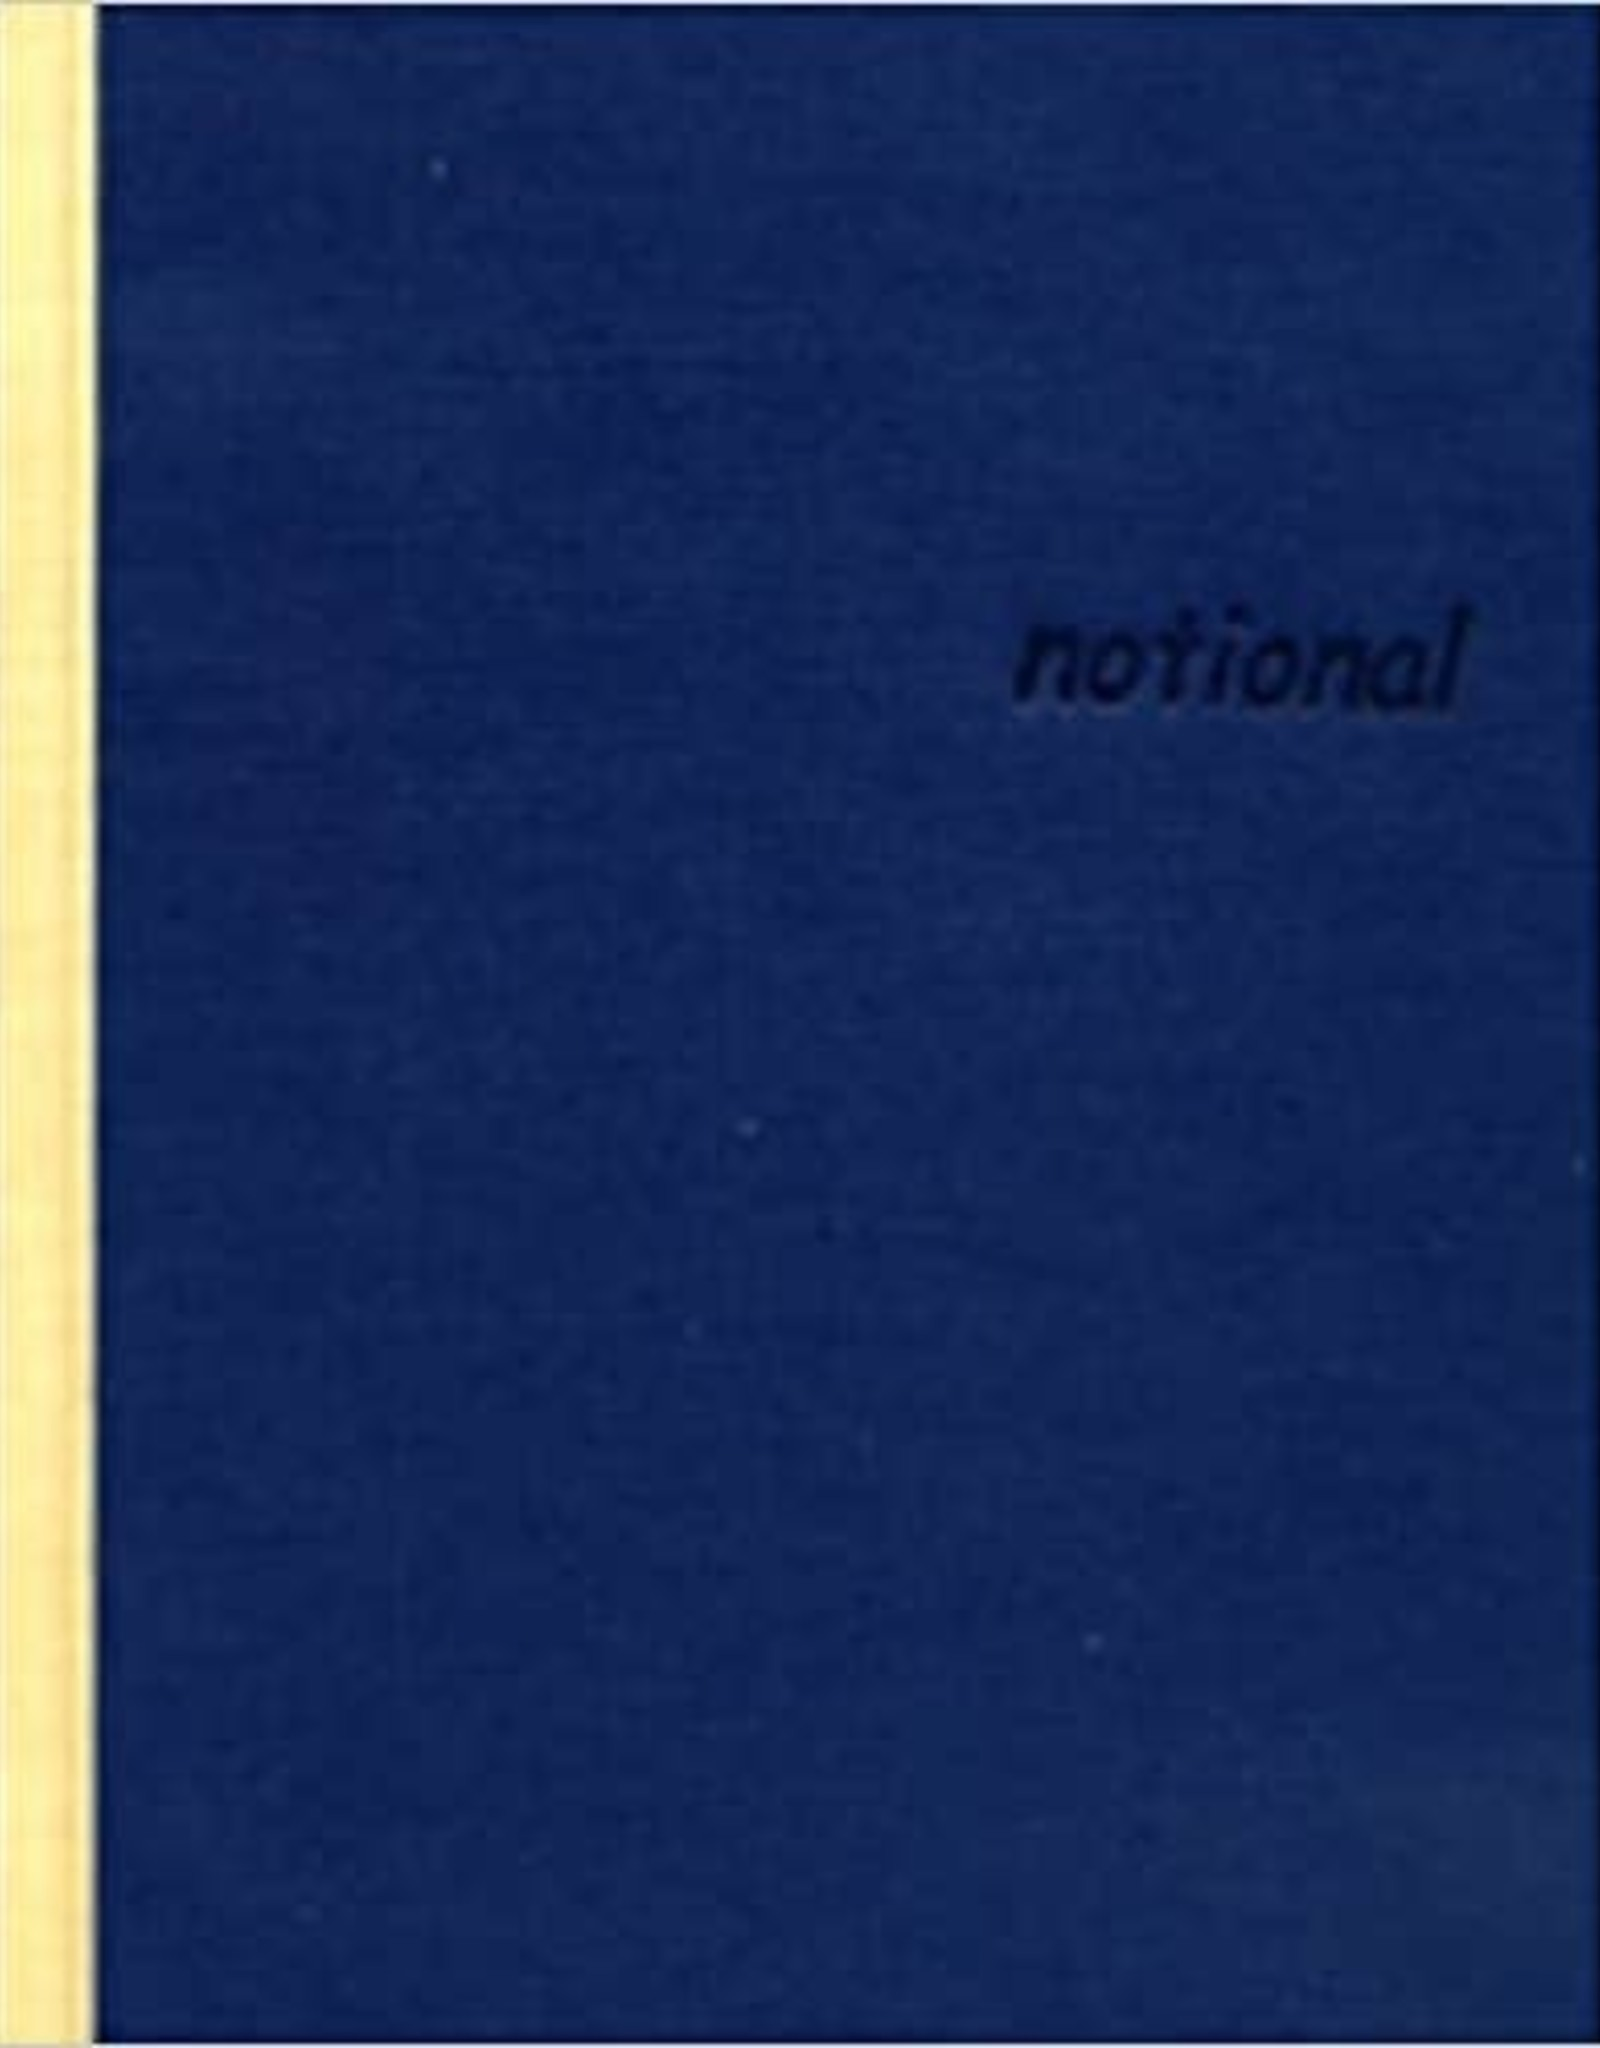 Coracle Notional Field Notes by Katie Holten